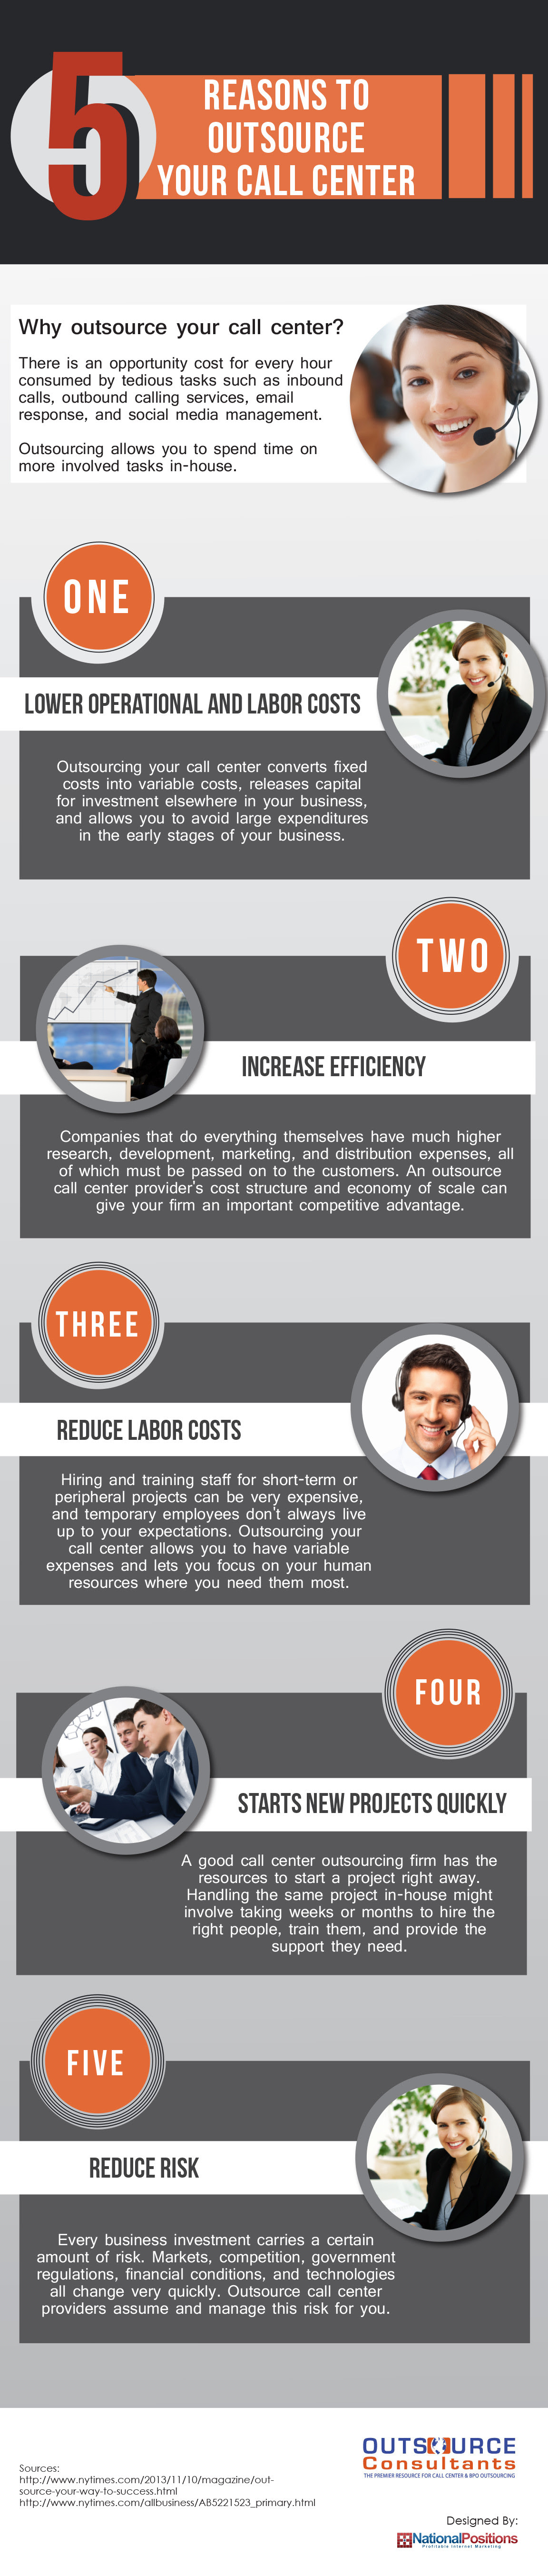 Infographic: 5 Reasons to Outsource Your Call Center